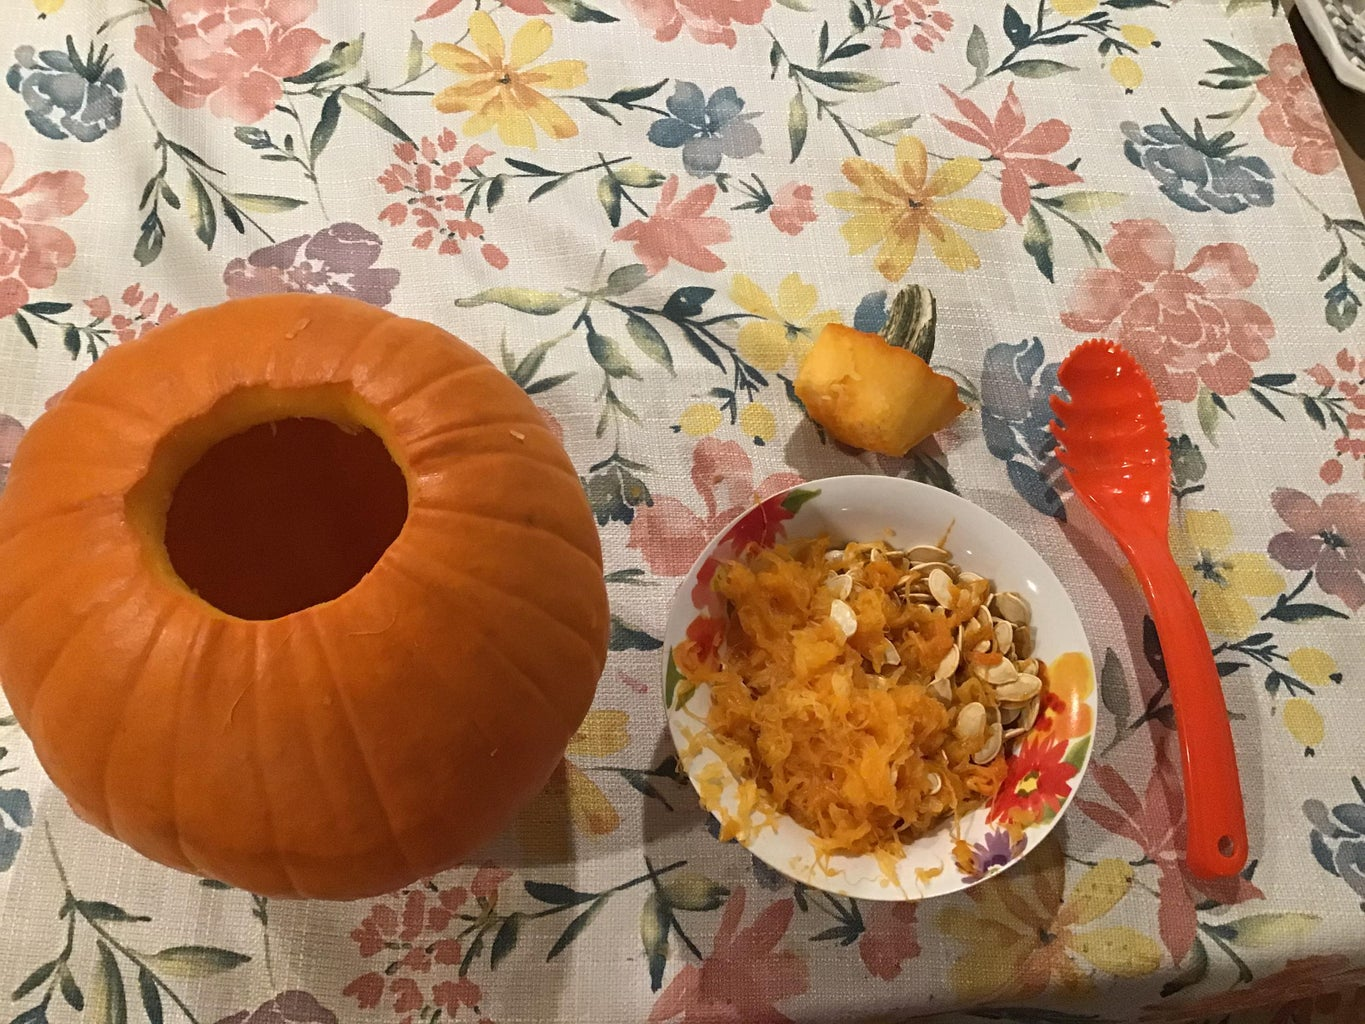 Scooping Out the Seeds From the Pumpkin. Warning Will Get Messy!!!!